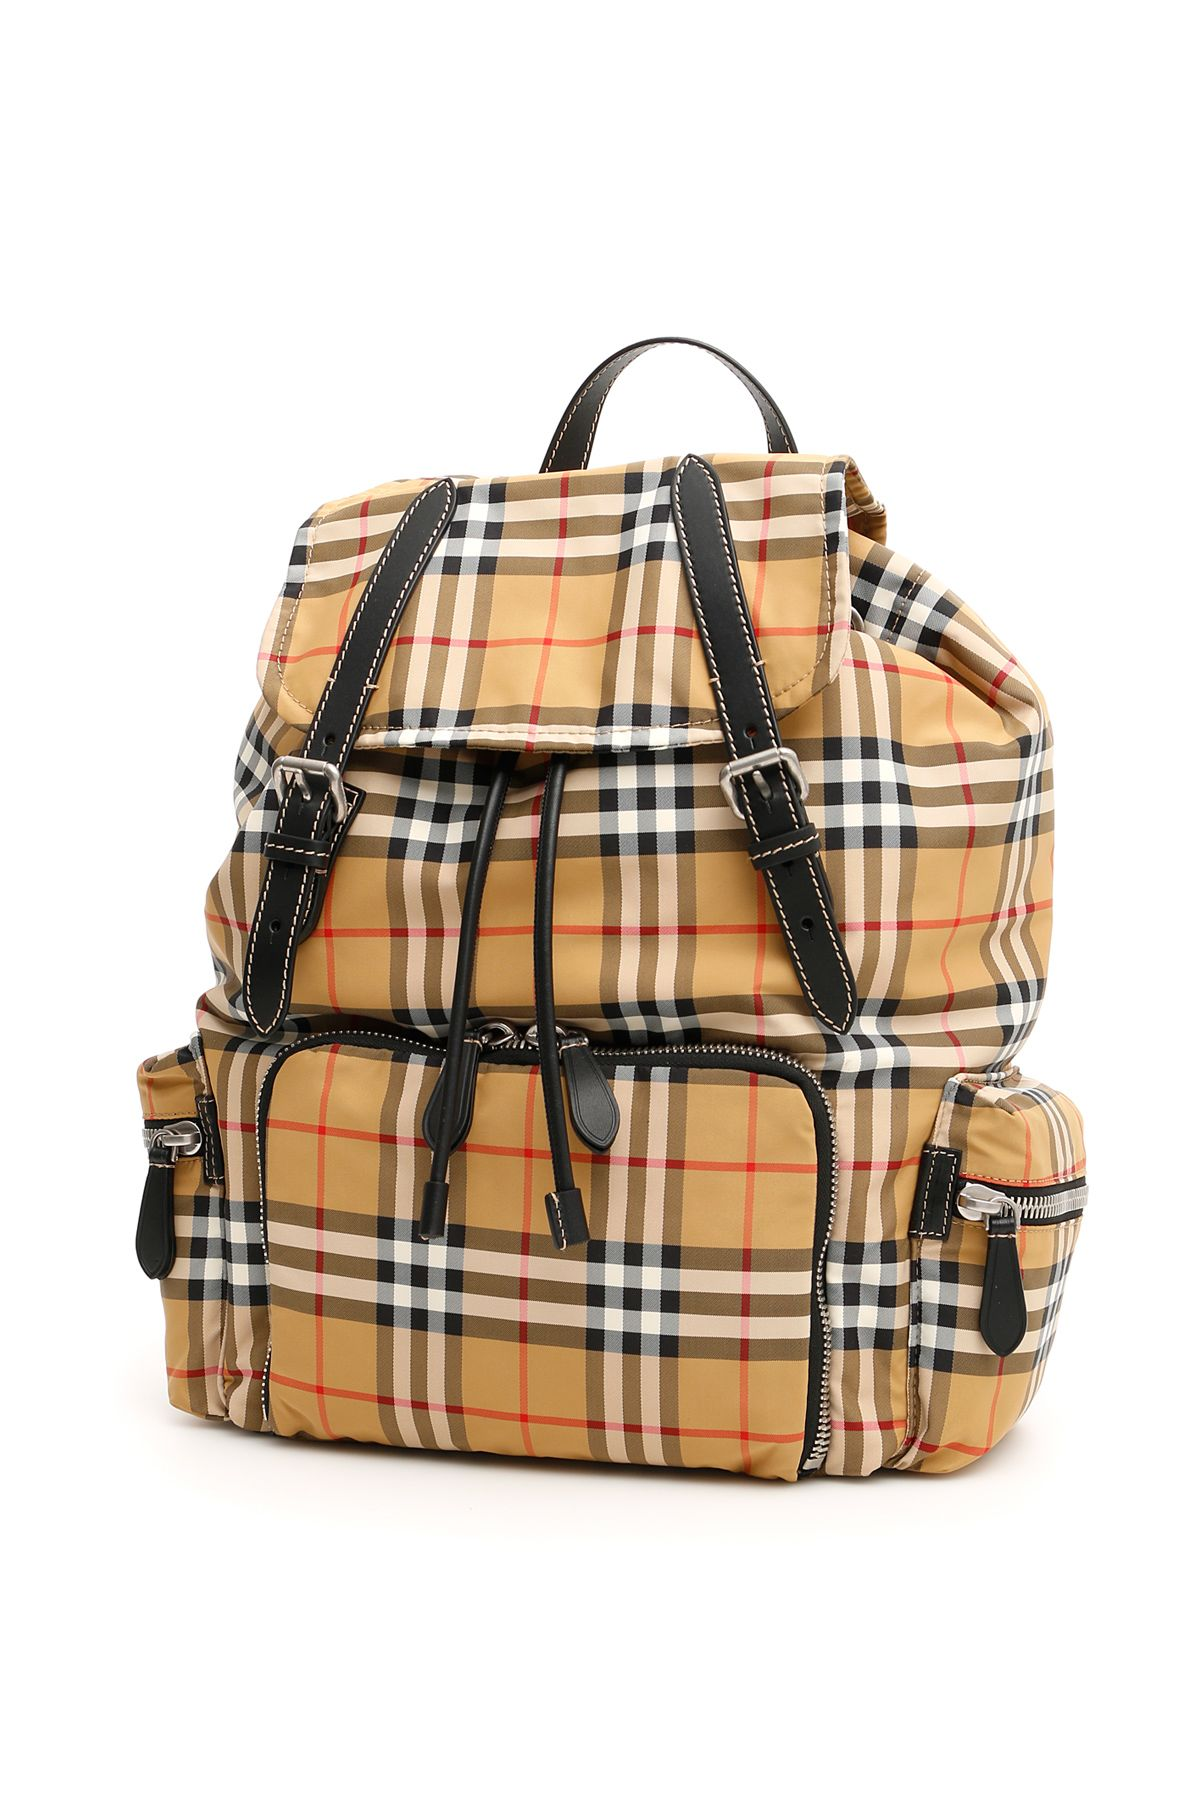 Burberry Medium Rucksack In Vintage Check